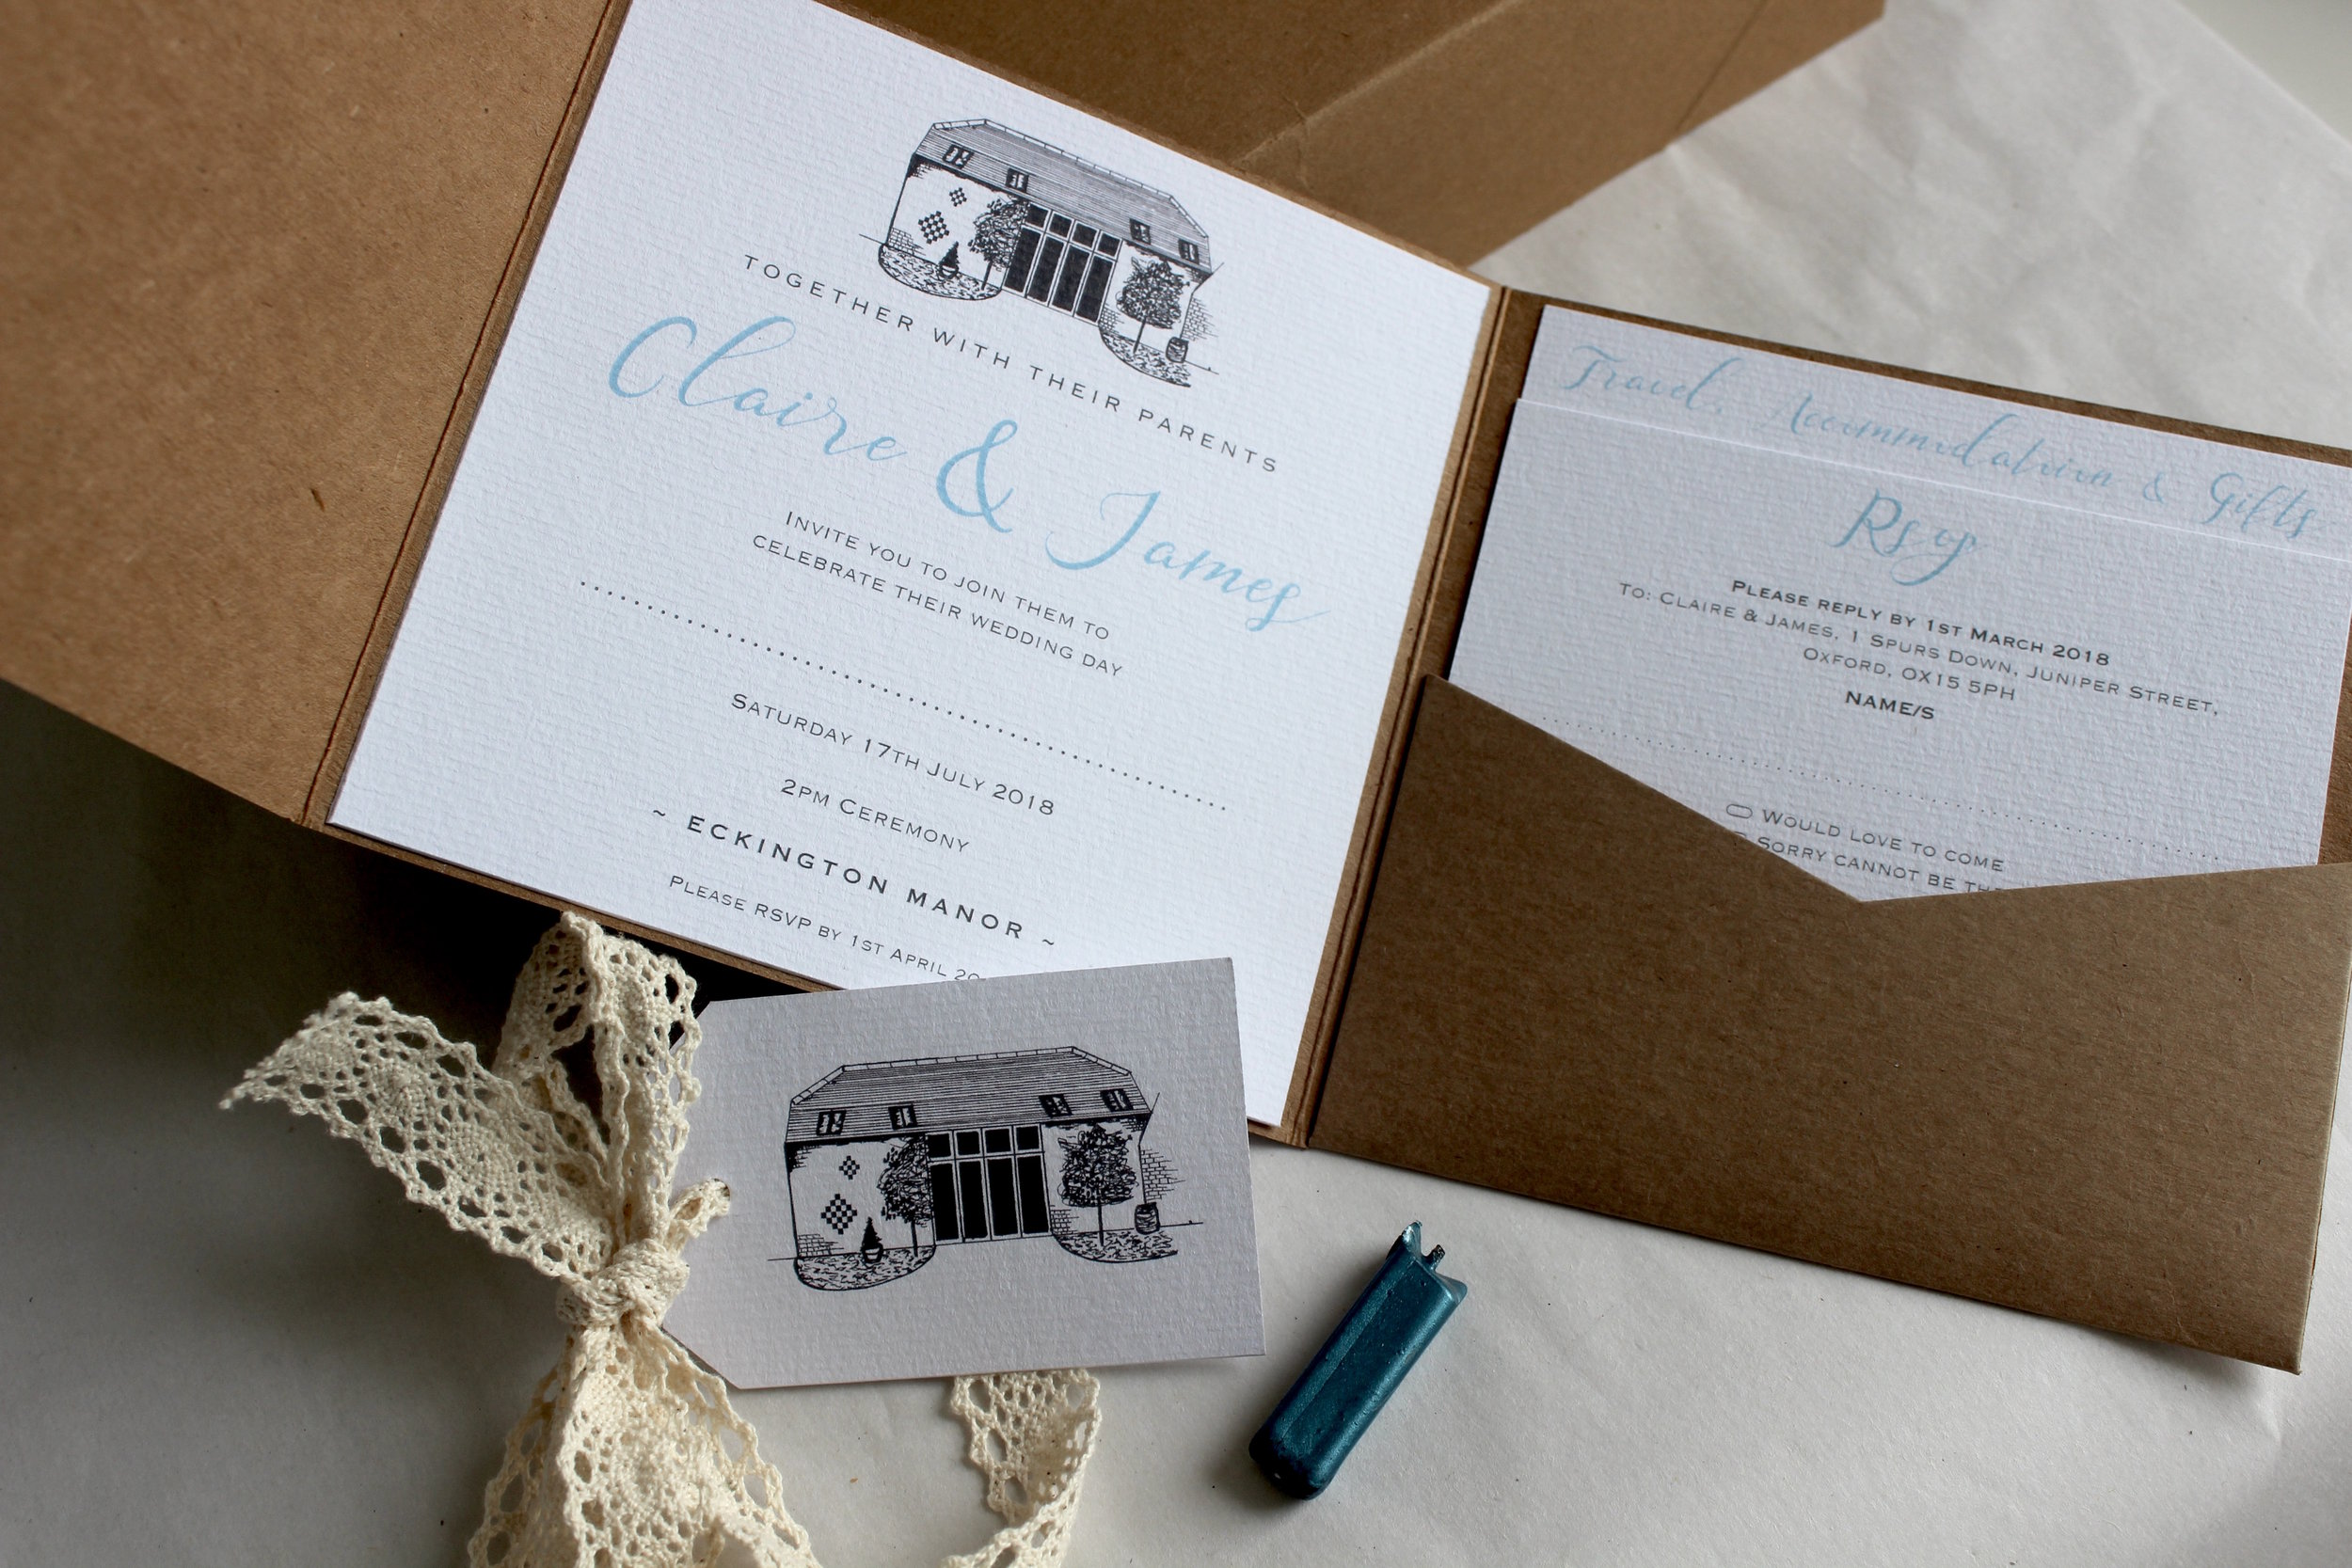 Eckington Manor Bespoke Invitation